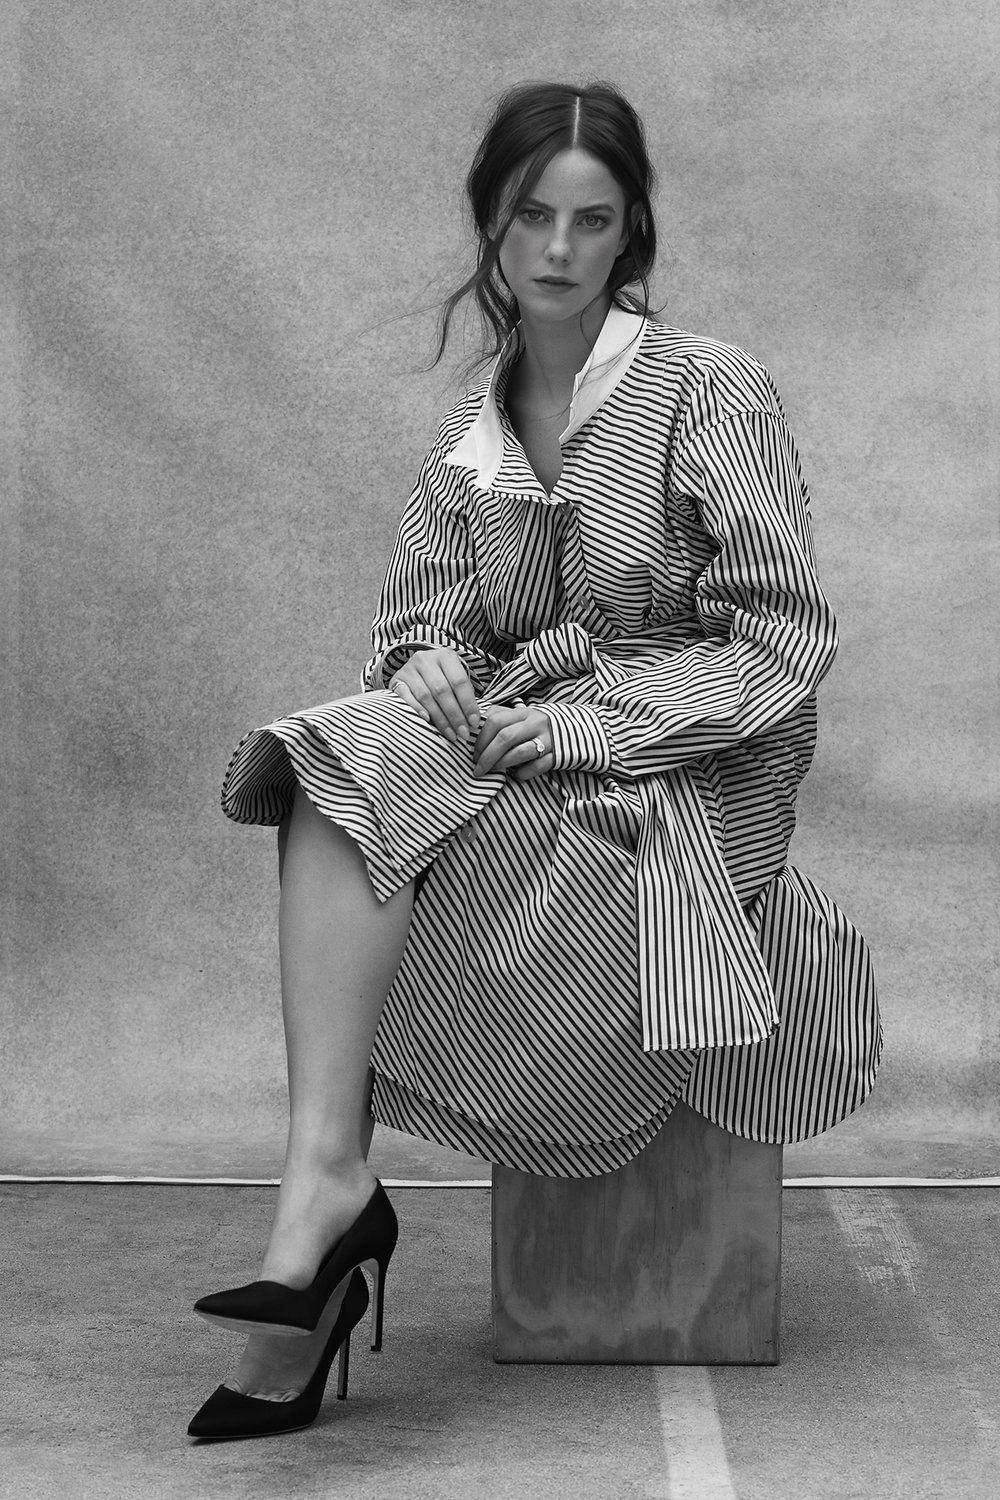 Shirt dress by LOEWE from The Apartment by theline.com, Shoes by MANOLO BLAHNIK, Ring by WEDNESDAY